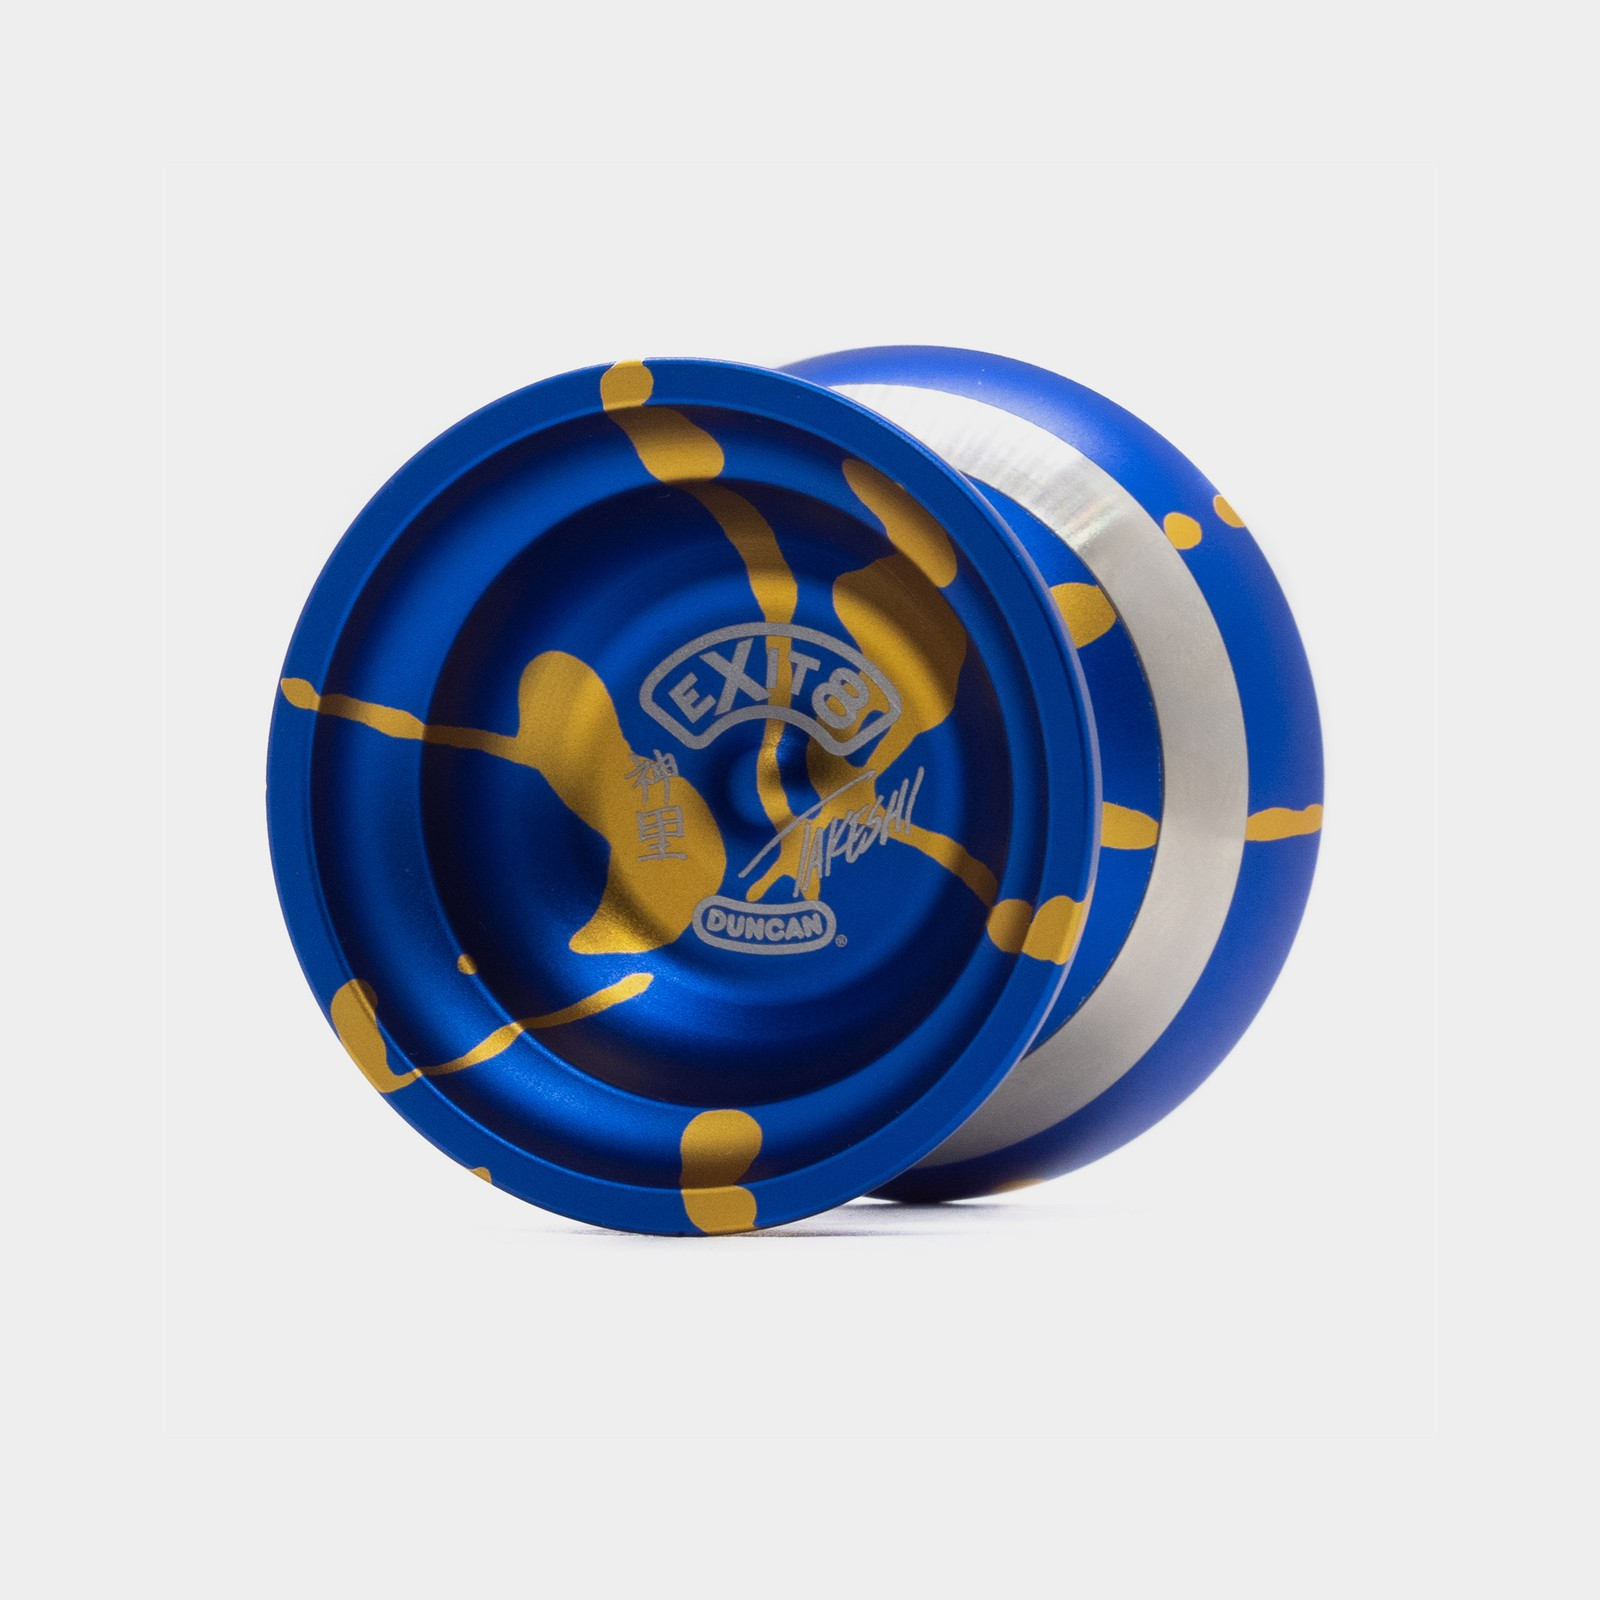 eXit 8 yo-yo in Blue / Gold by Duncan